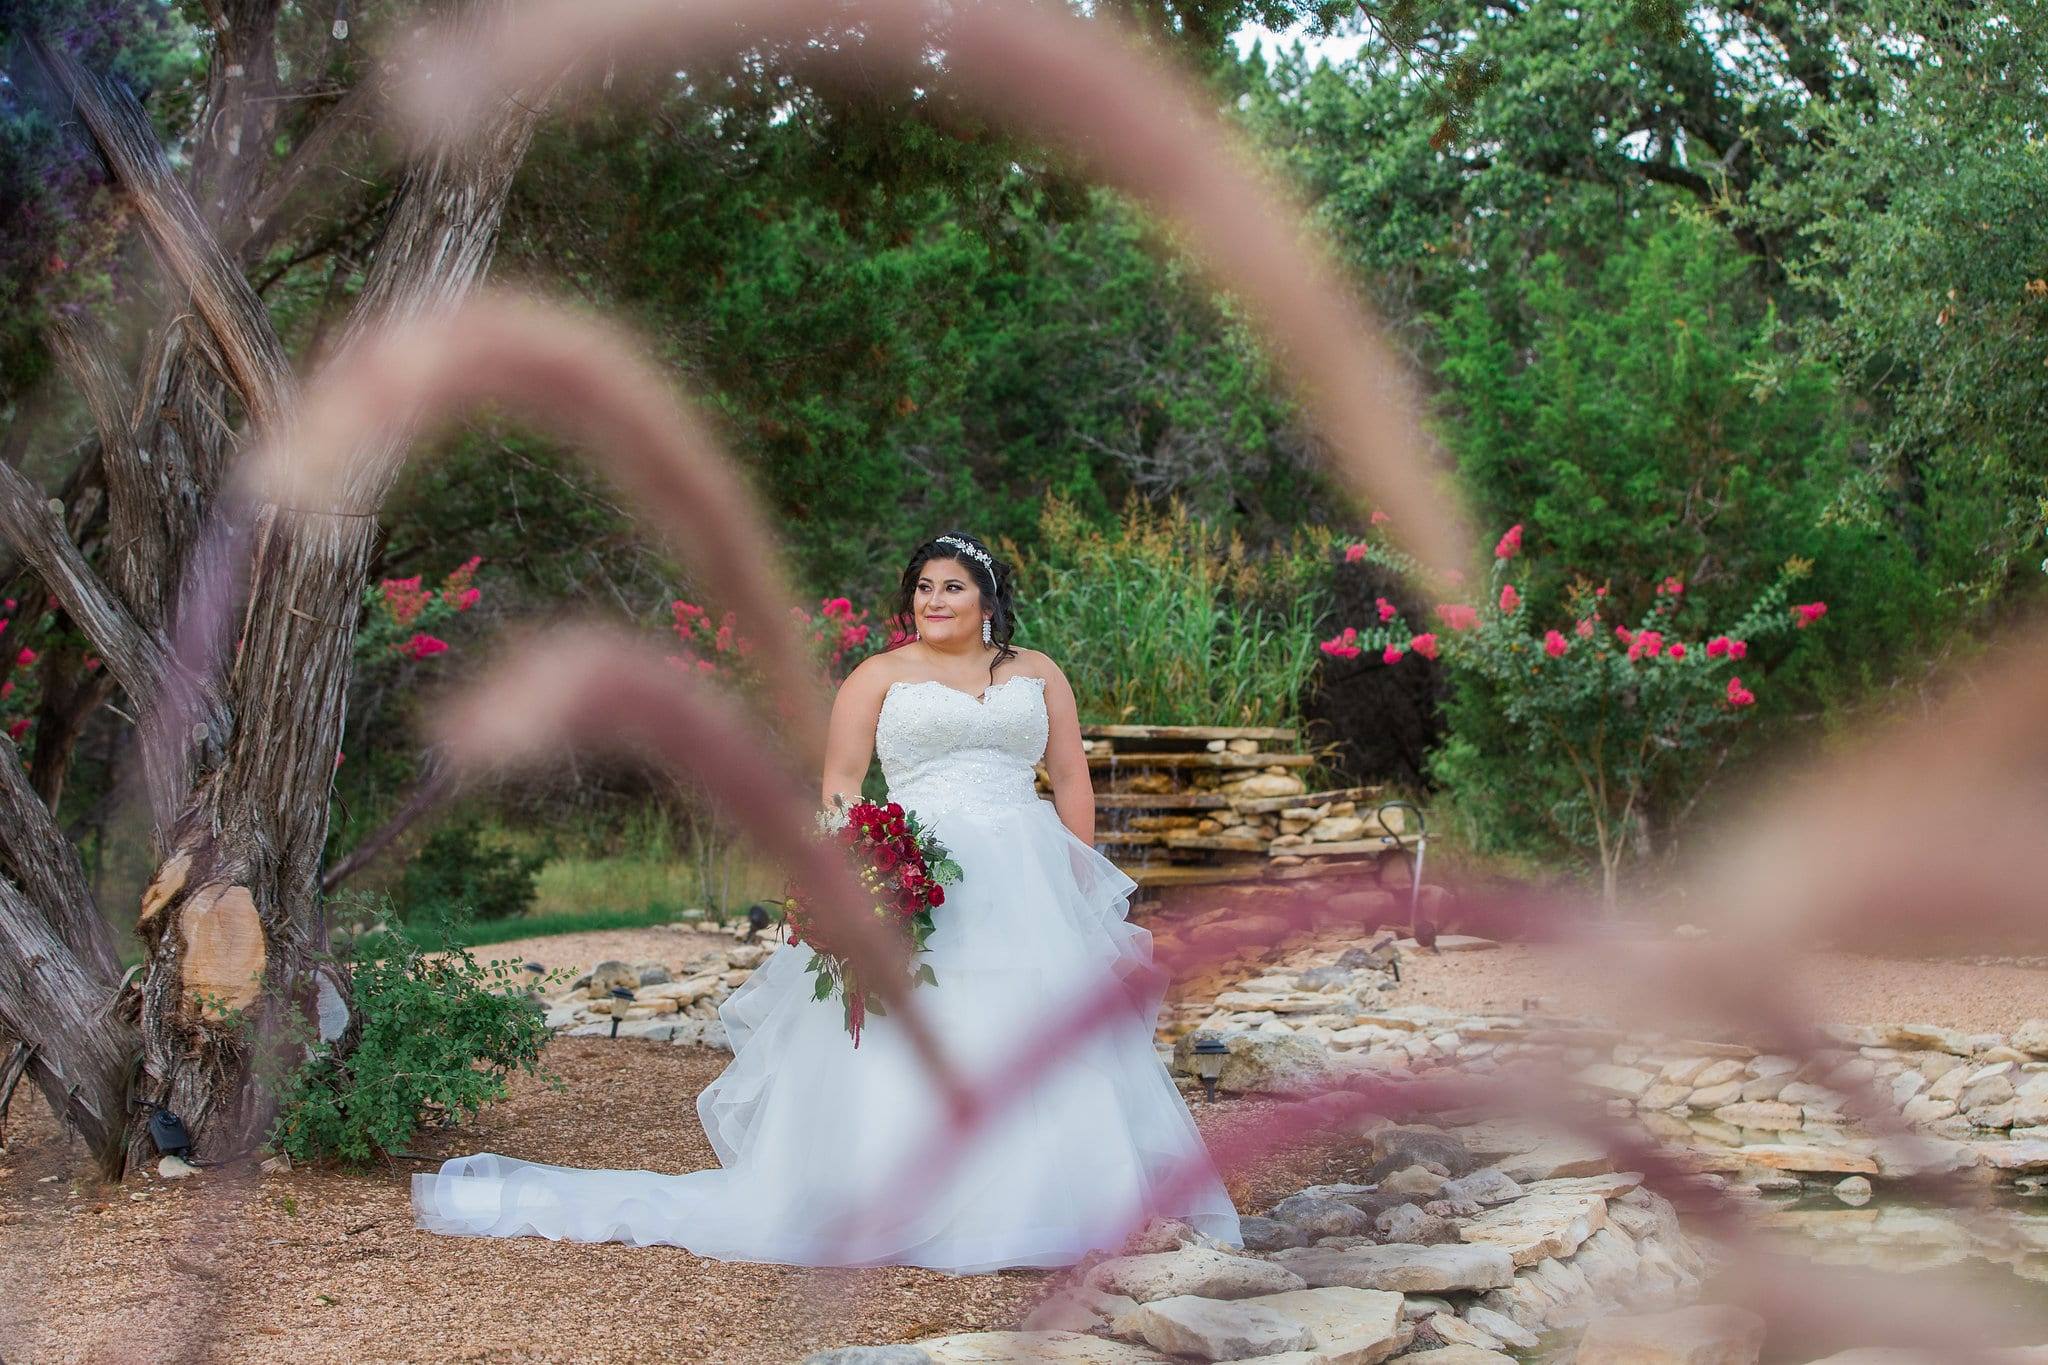 Laura's Bridals at Western Sky at the fountain through the grass